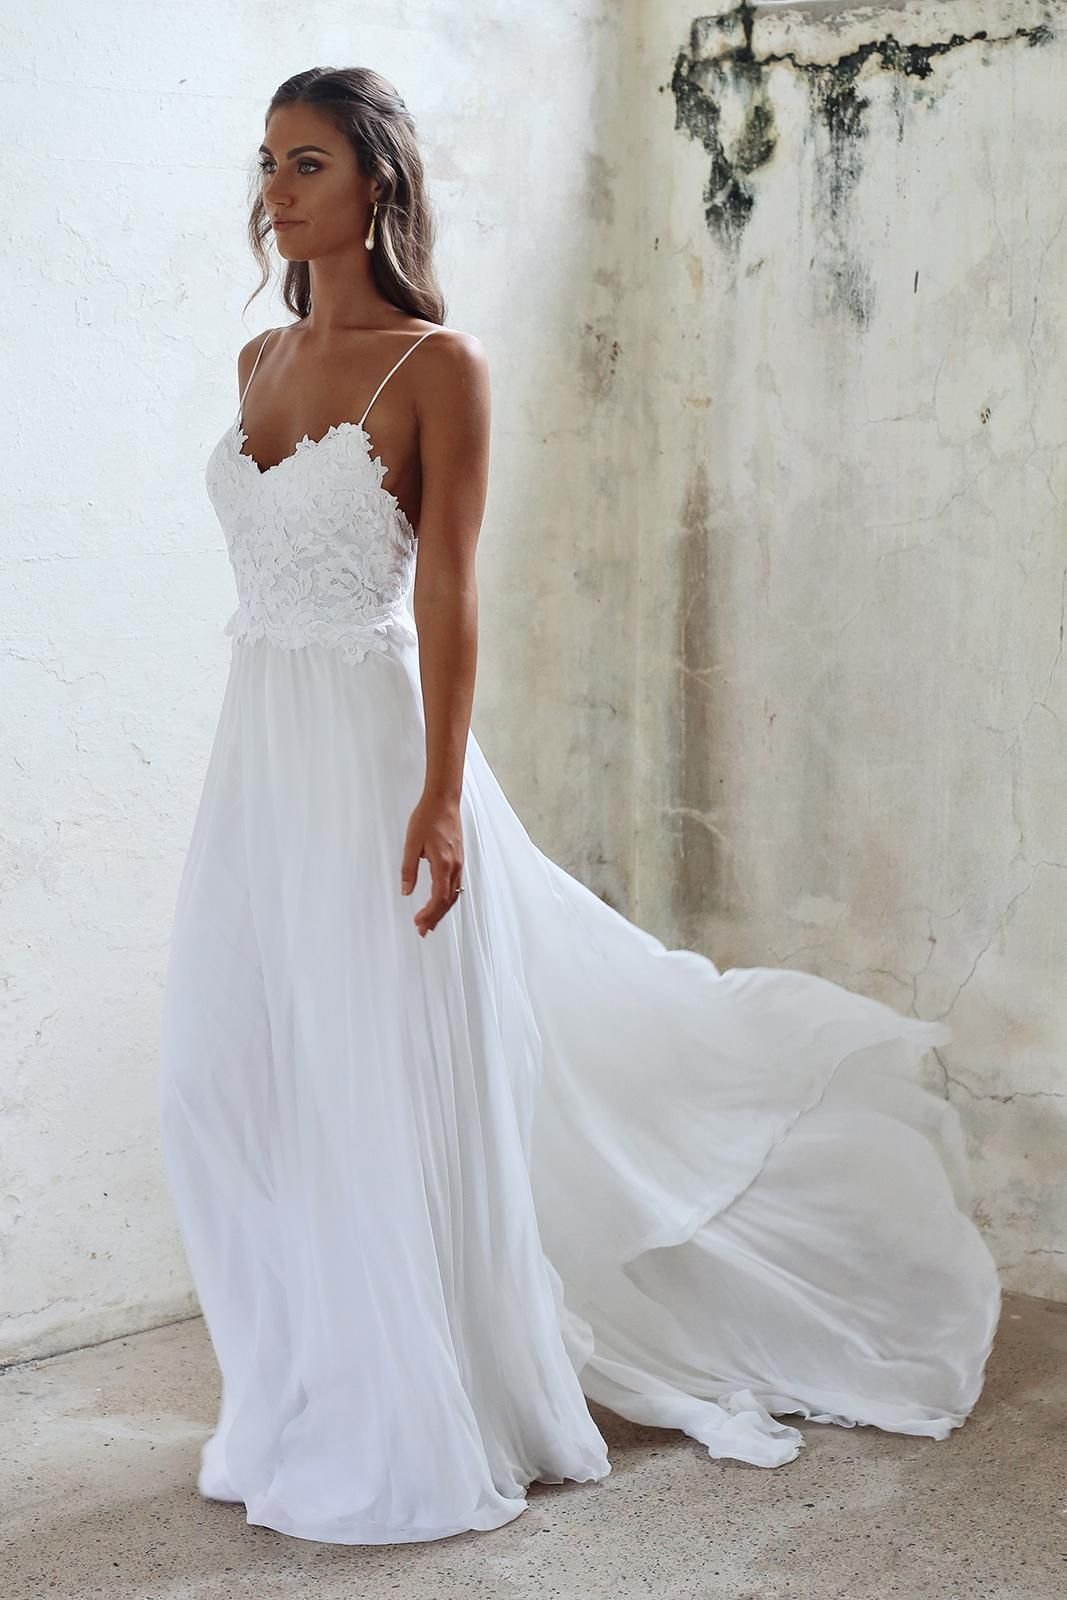 reasons to love beach wedding dresses wedding dress ideas